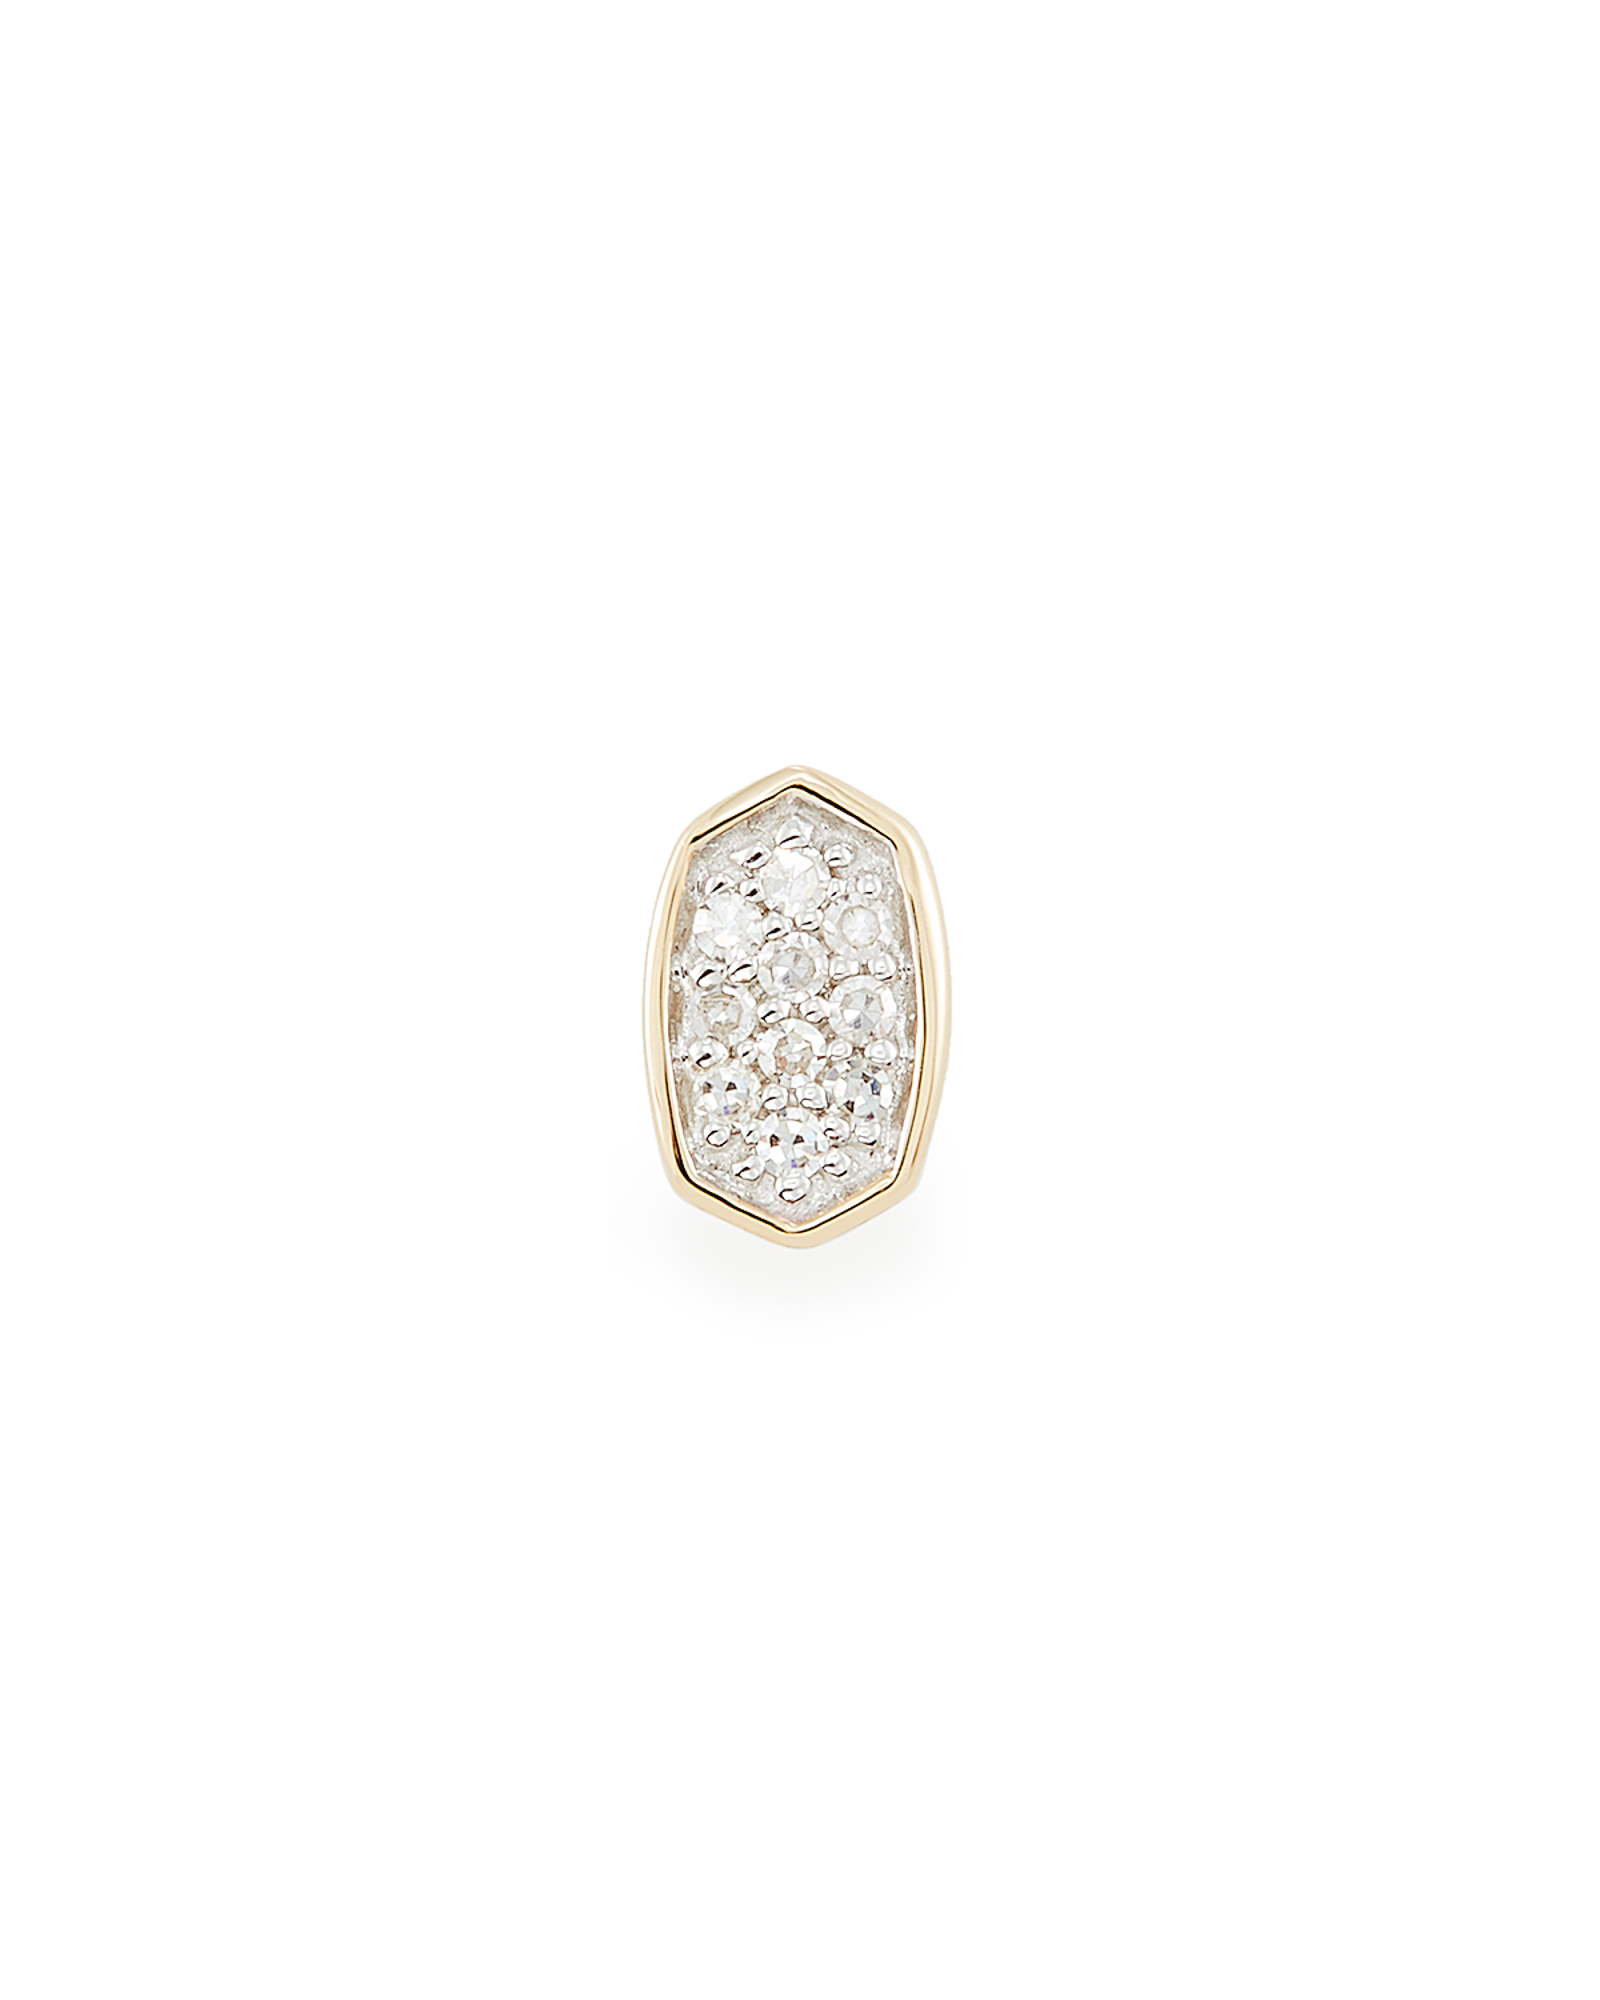 Marisa Mini 14K Yellow Gold Stud Earring in White Diamond